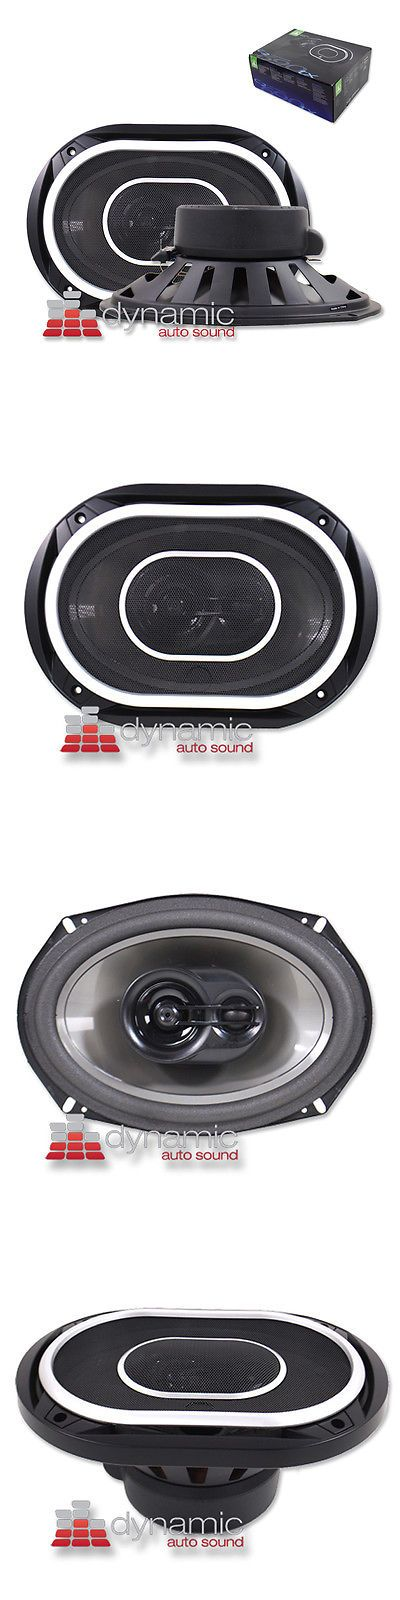 "Car Speakers and Speaker Systems: Jl Audio C2-690Tx 6""X9"" Car Stereo Speakers 225W 3-Way Coaxial C2690tx C2 New BUY IT NOW ONLY: $139.95"